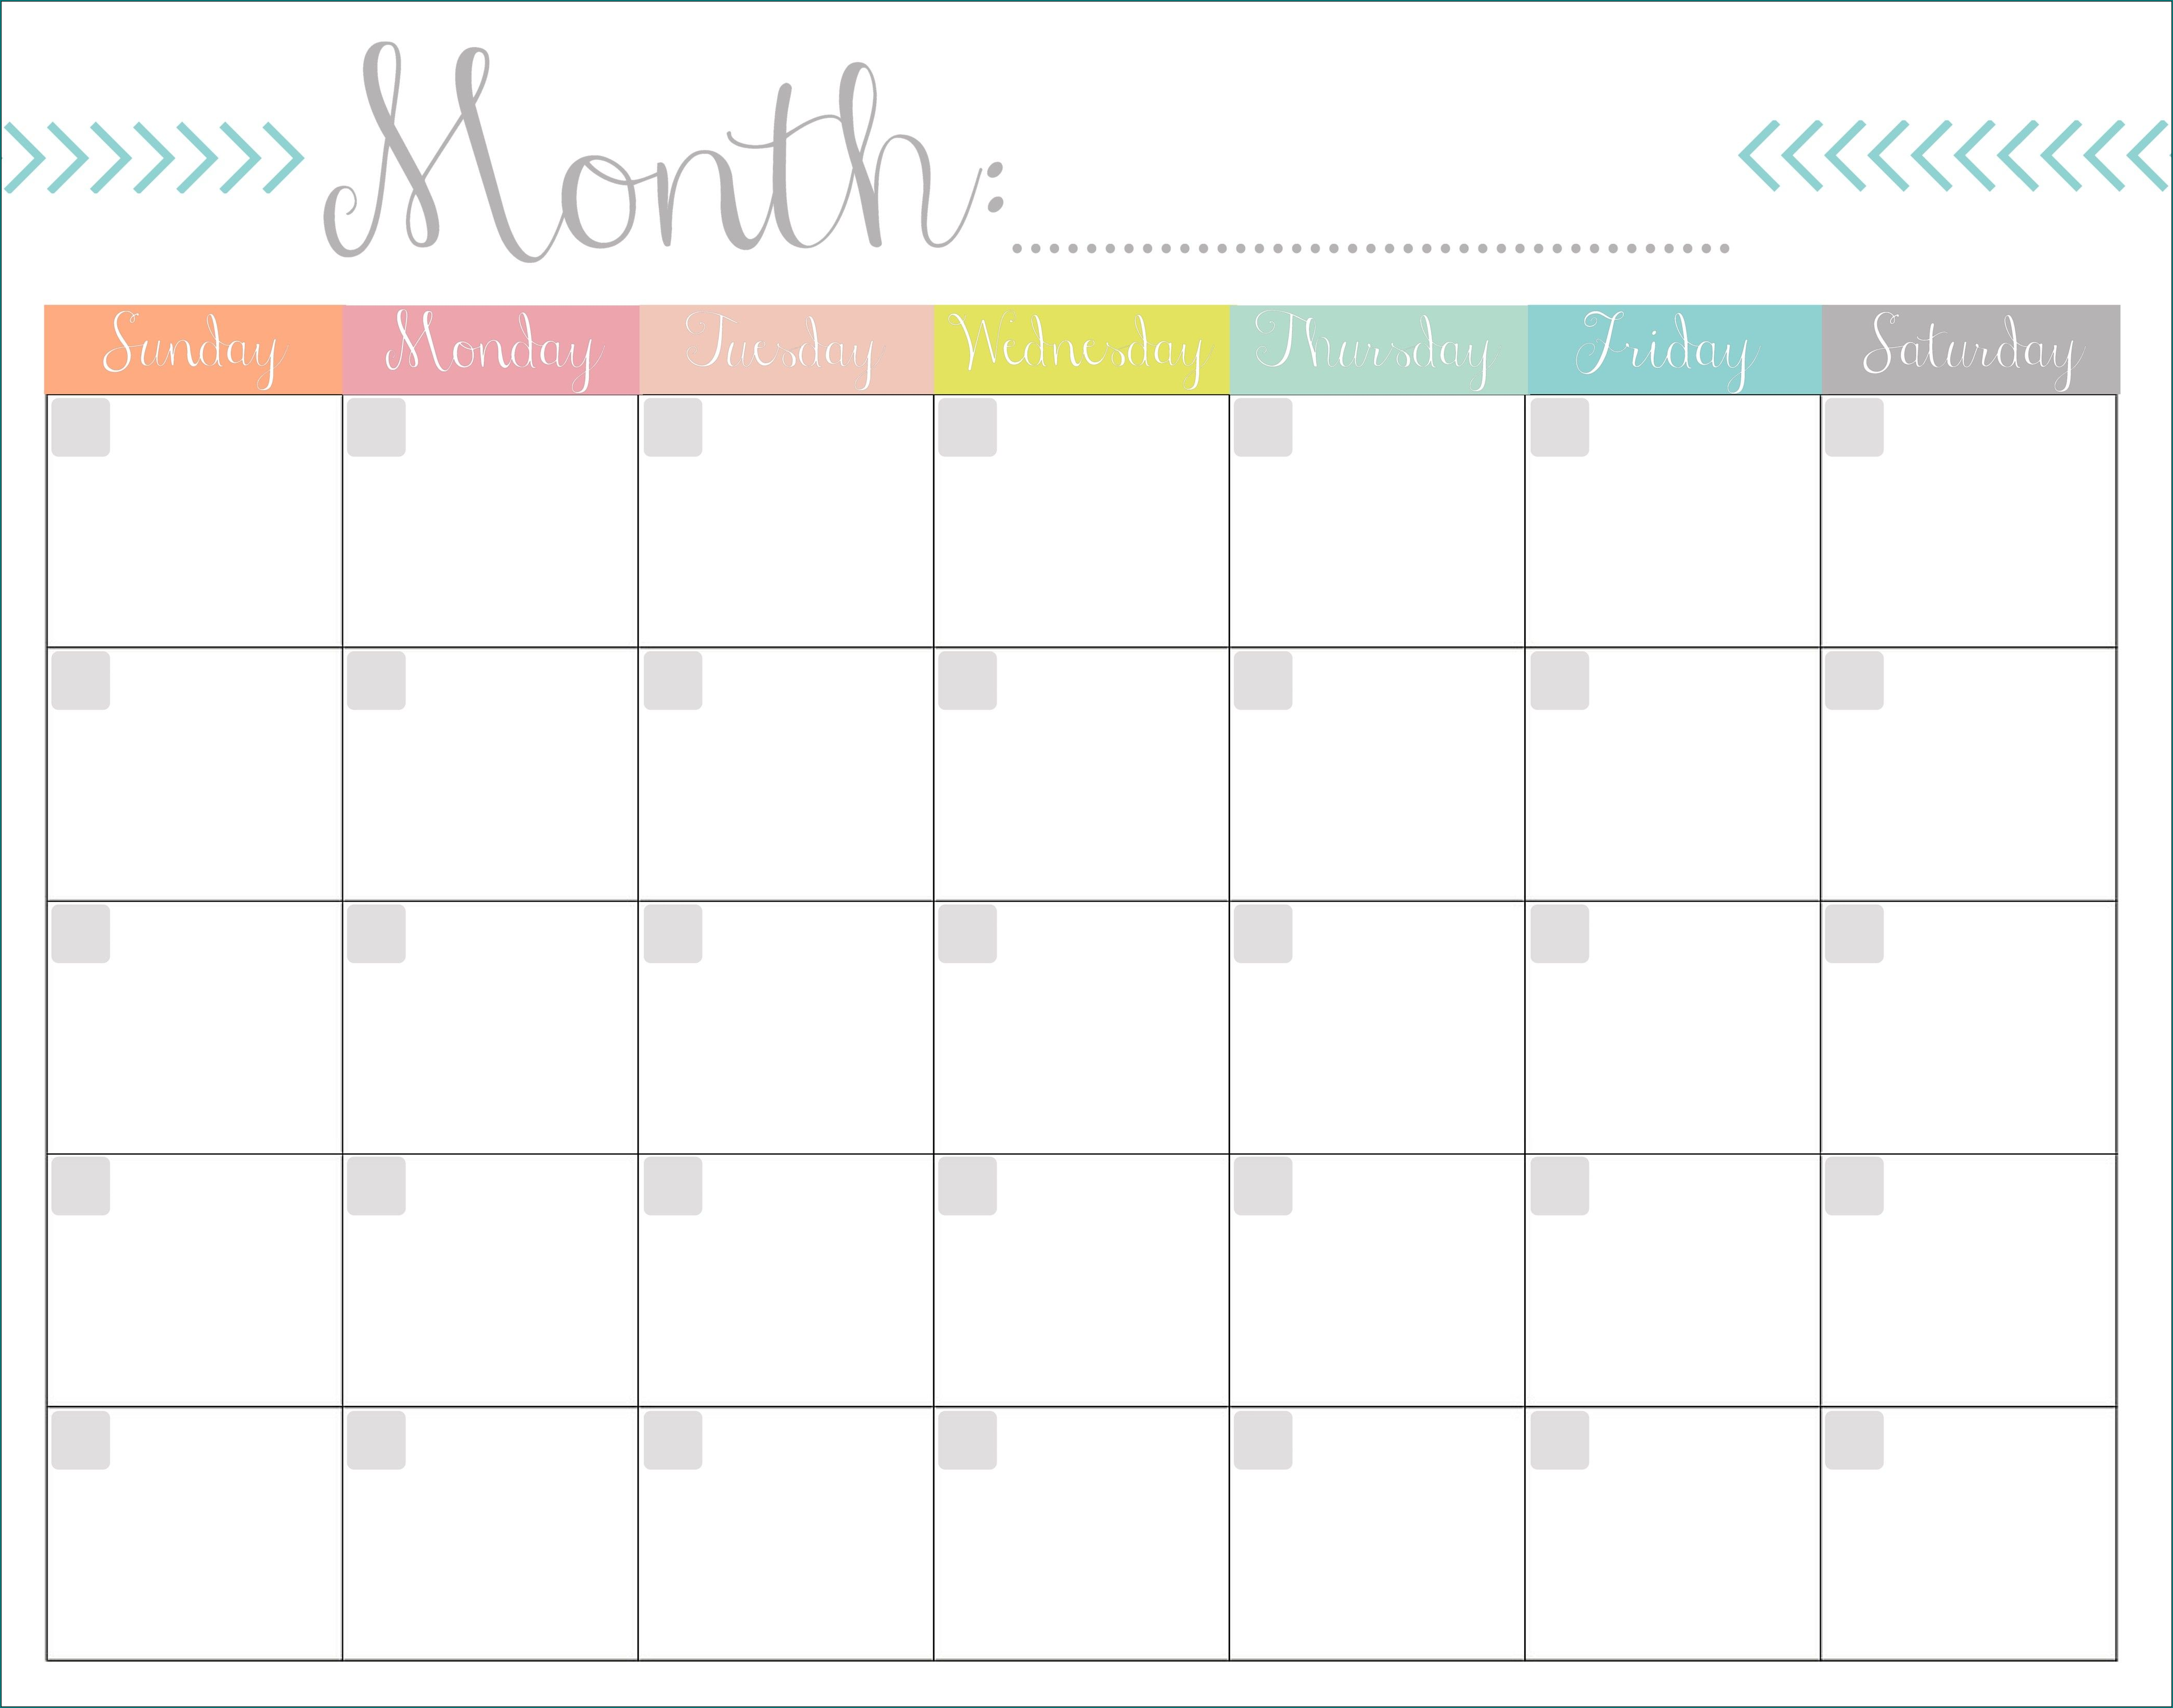 Example of Excel Monthly Work Schedule Template